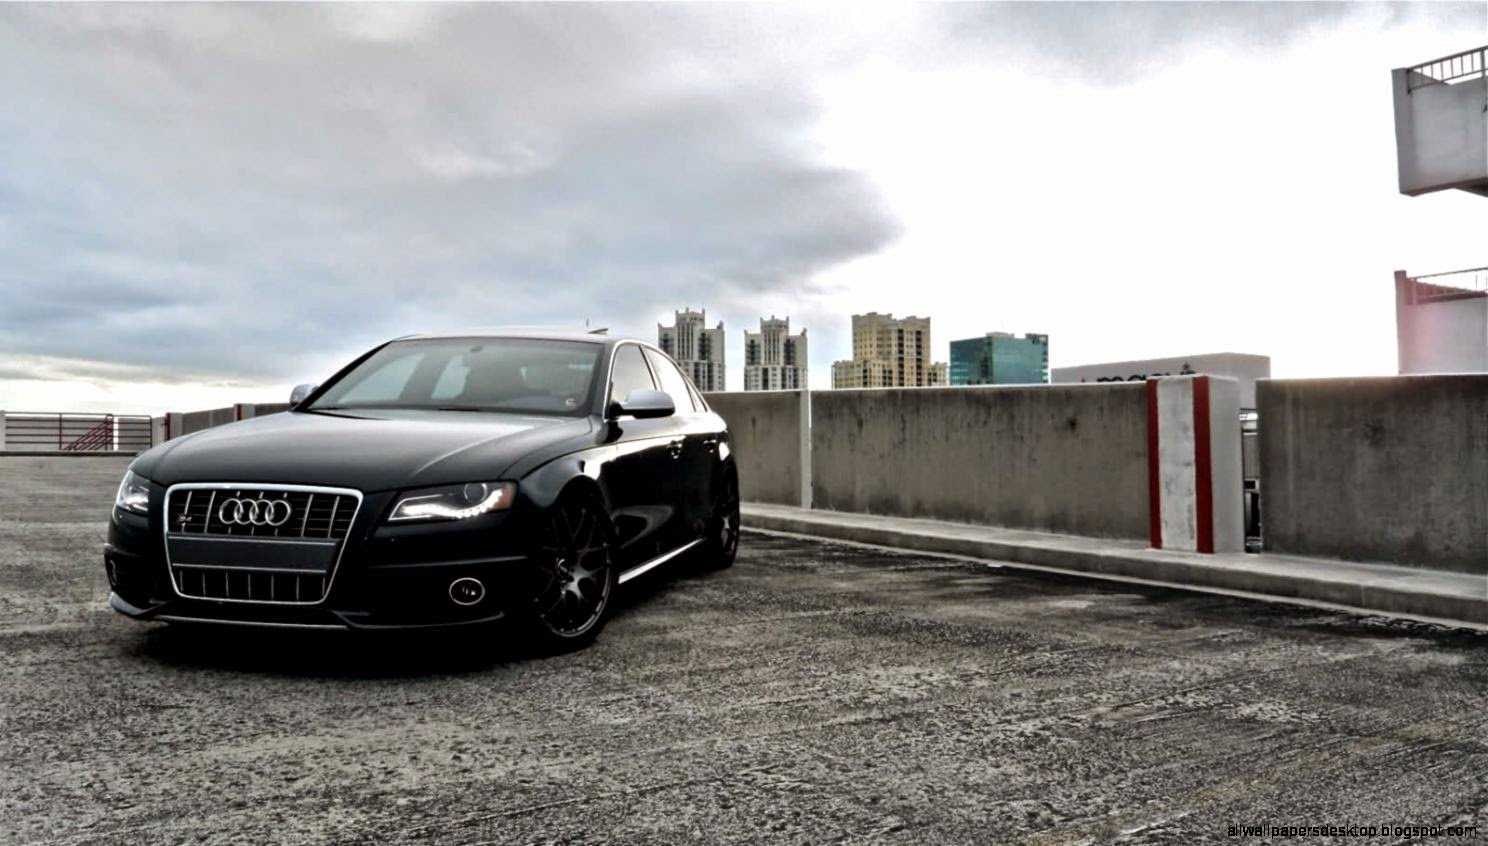 Latest Audi A4 In City Wallpaper Hd All Wallpapers Desktop Free Download